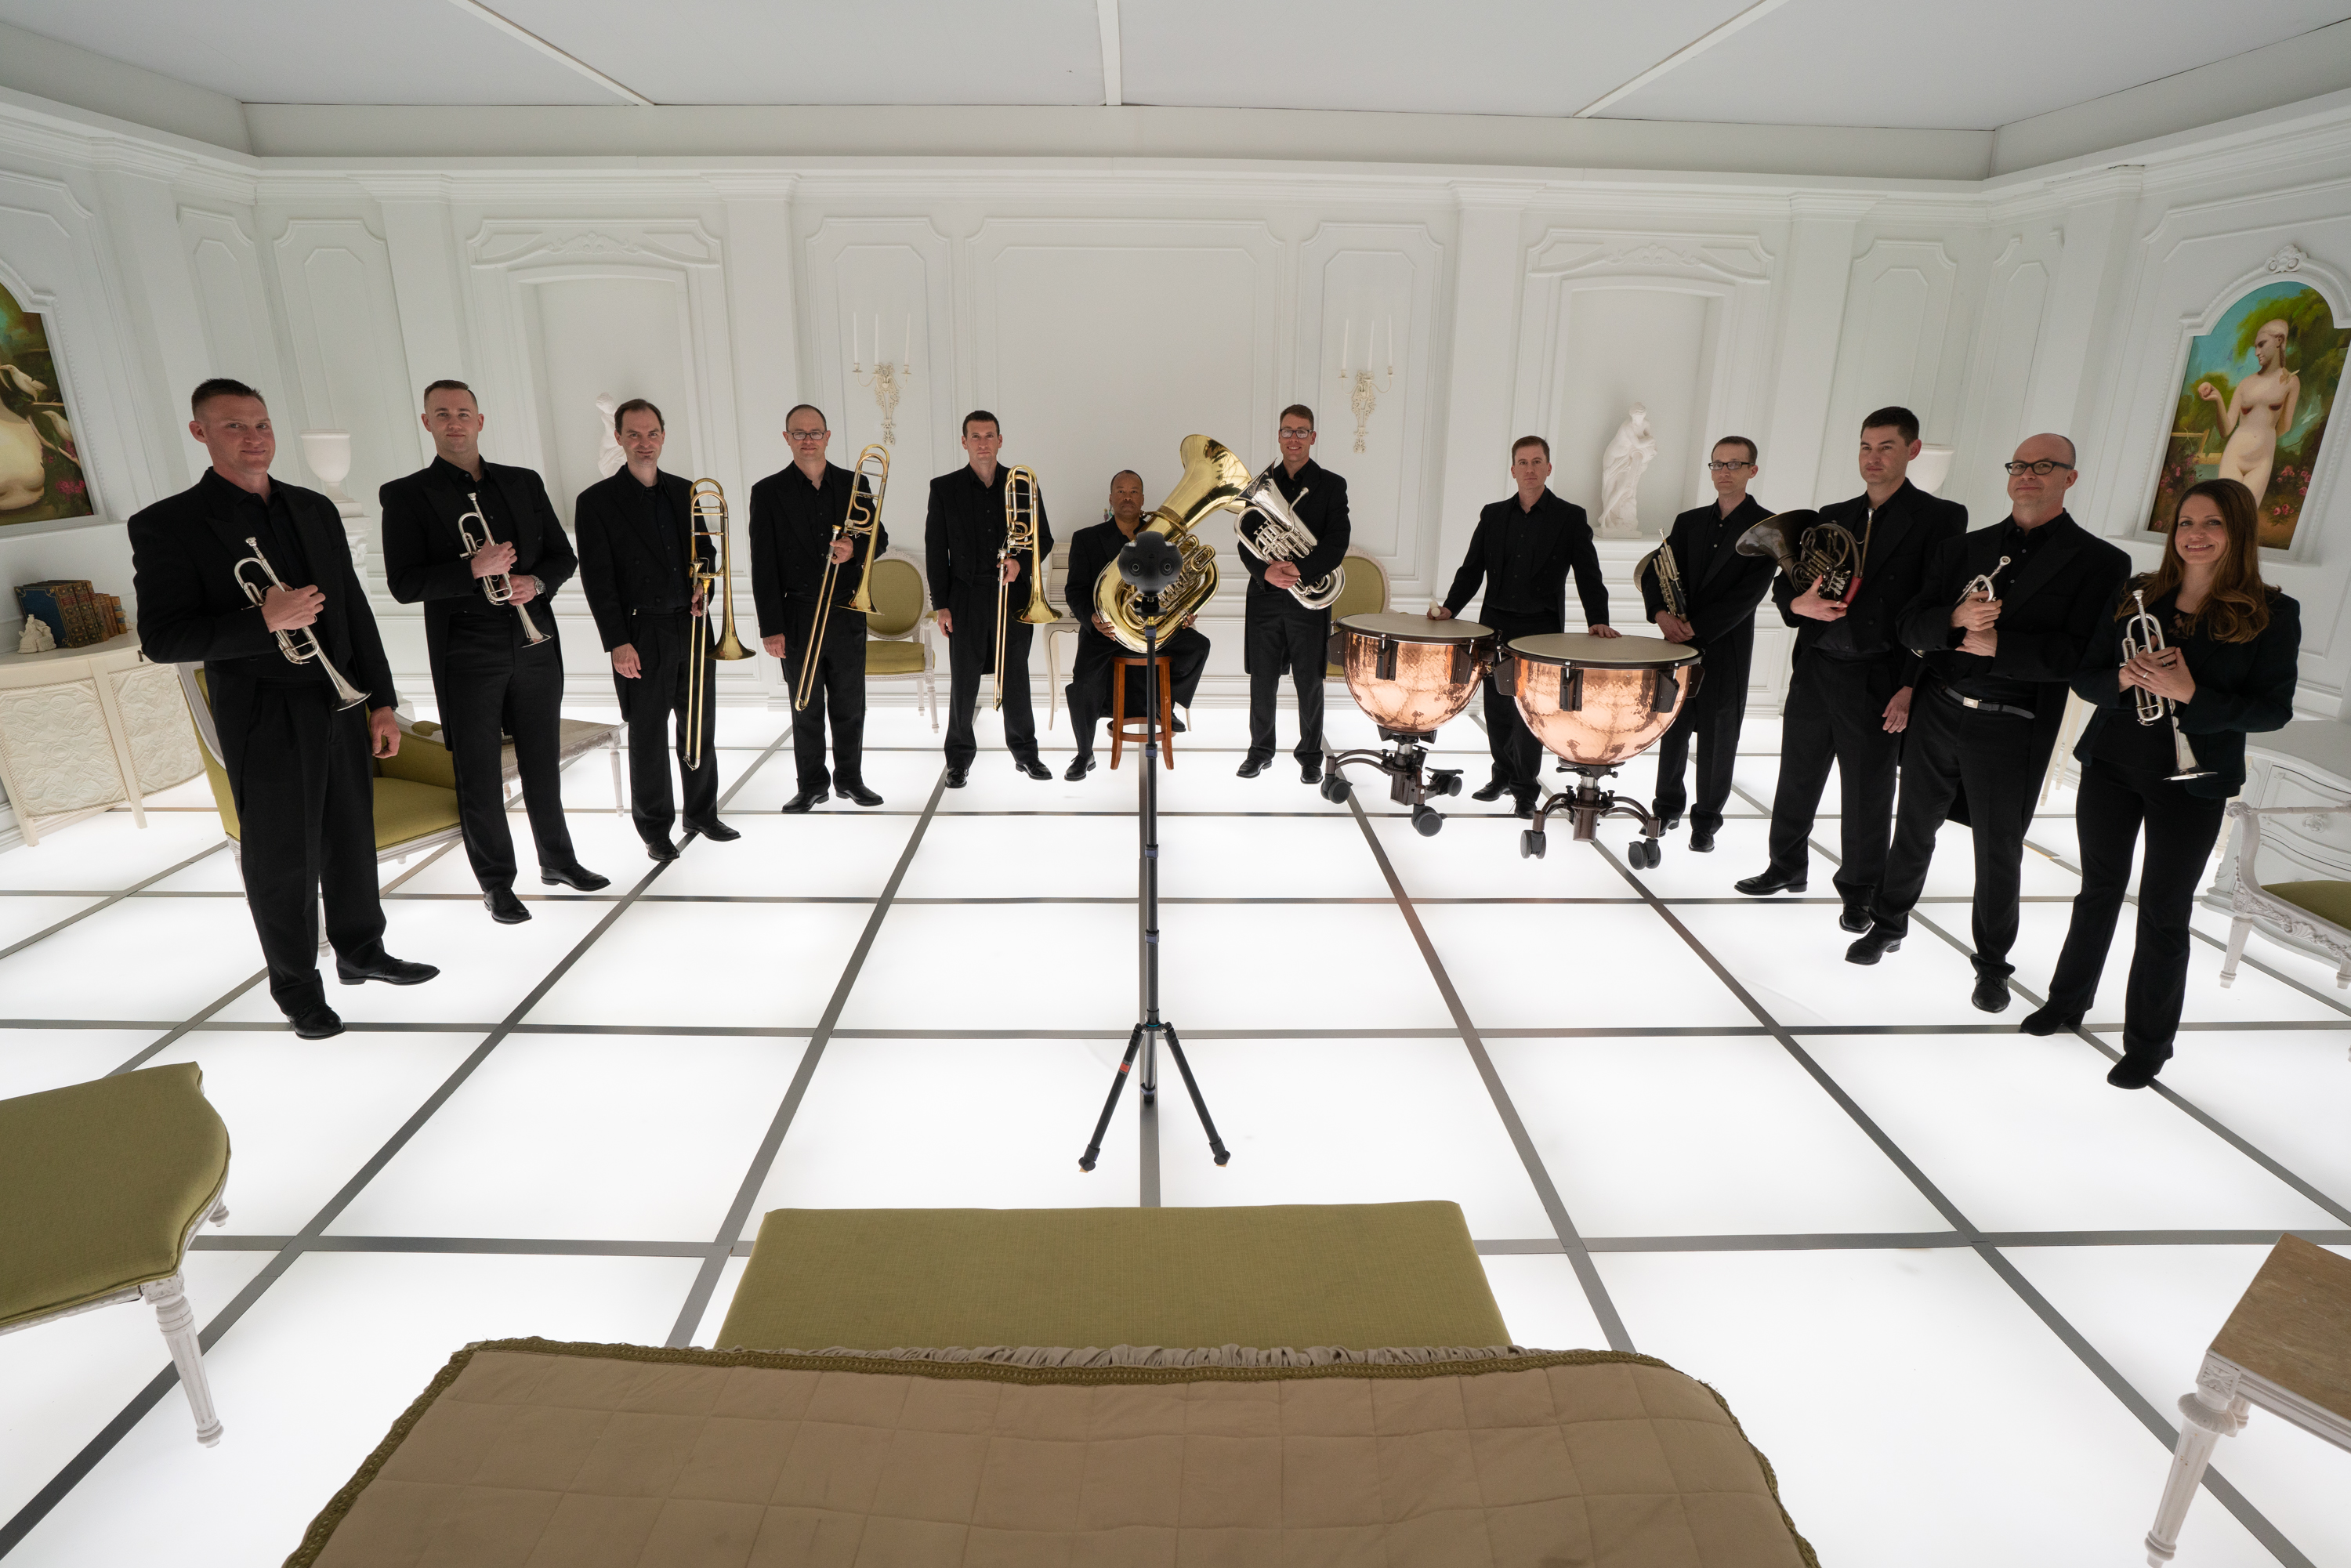 """The Barclay Brass band inside the 2001: A Space Odyssey Immersive Art Exhibit  The Barmecide Feast by Simon Birch"""" at the National Air and Space Museum in Washington, D.C. on April 24, 2018."""